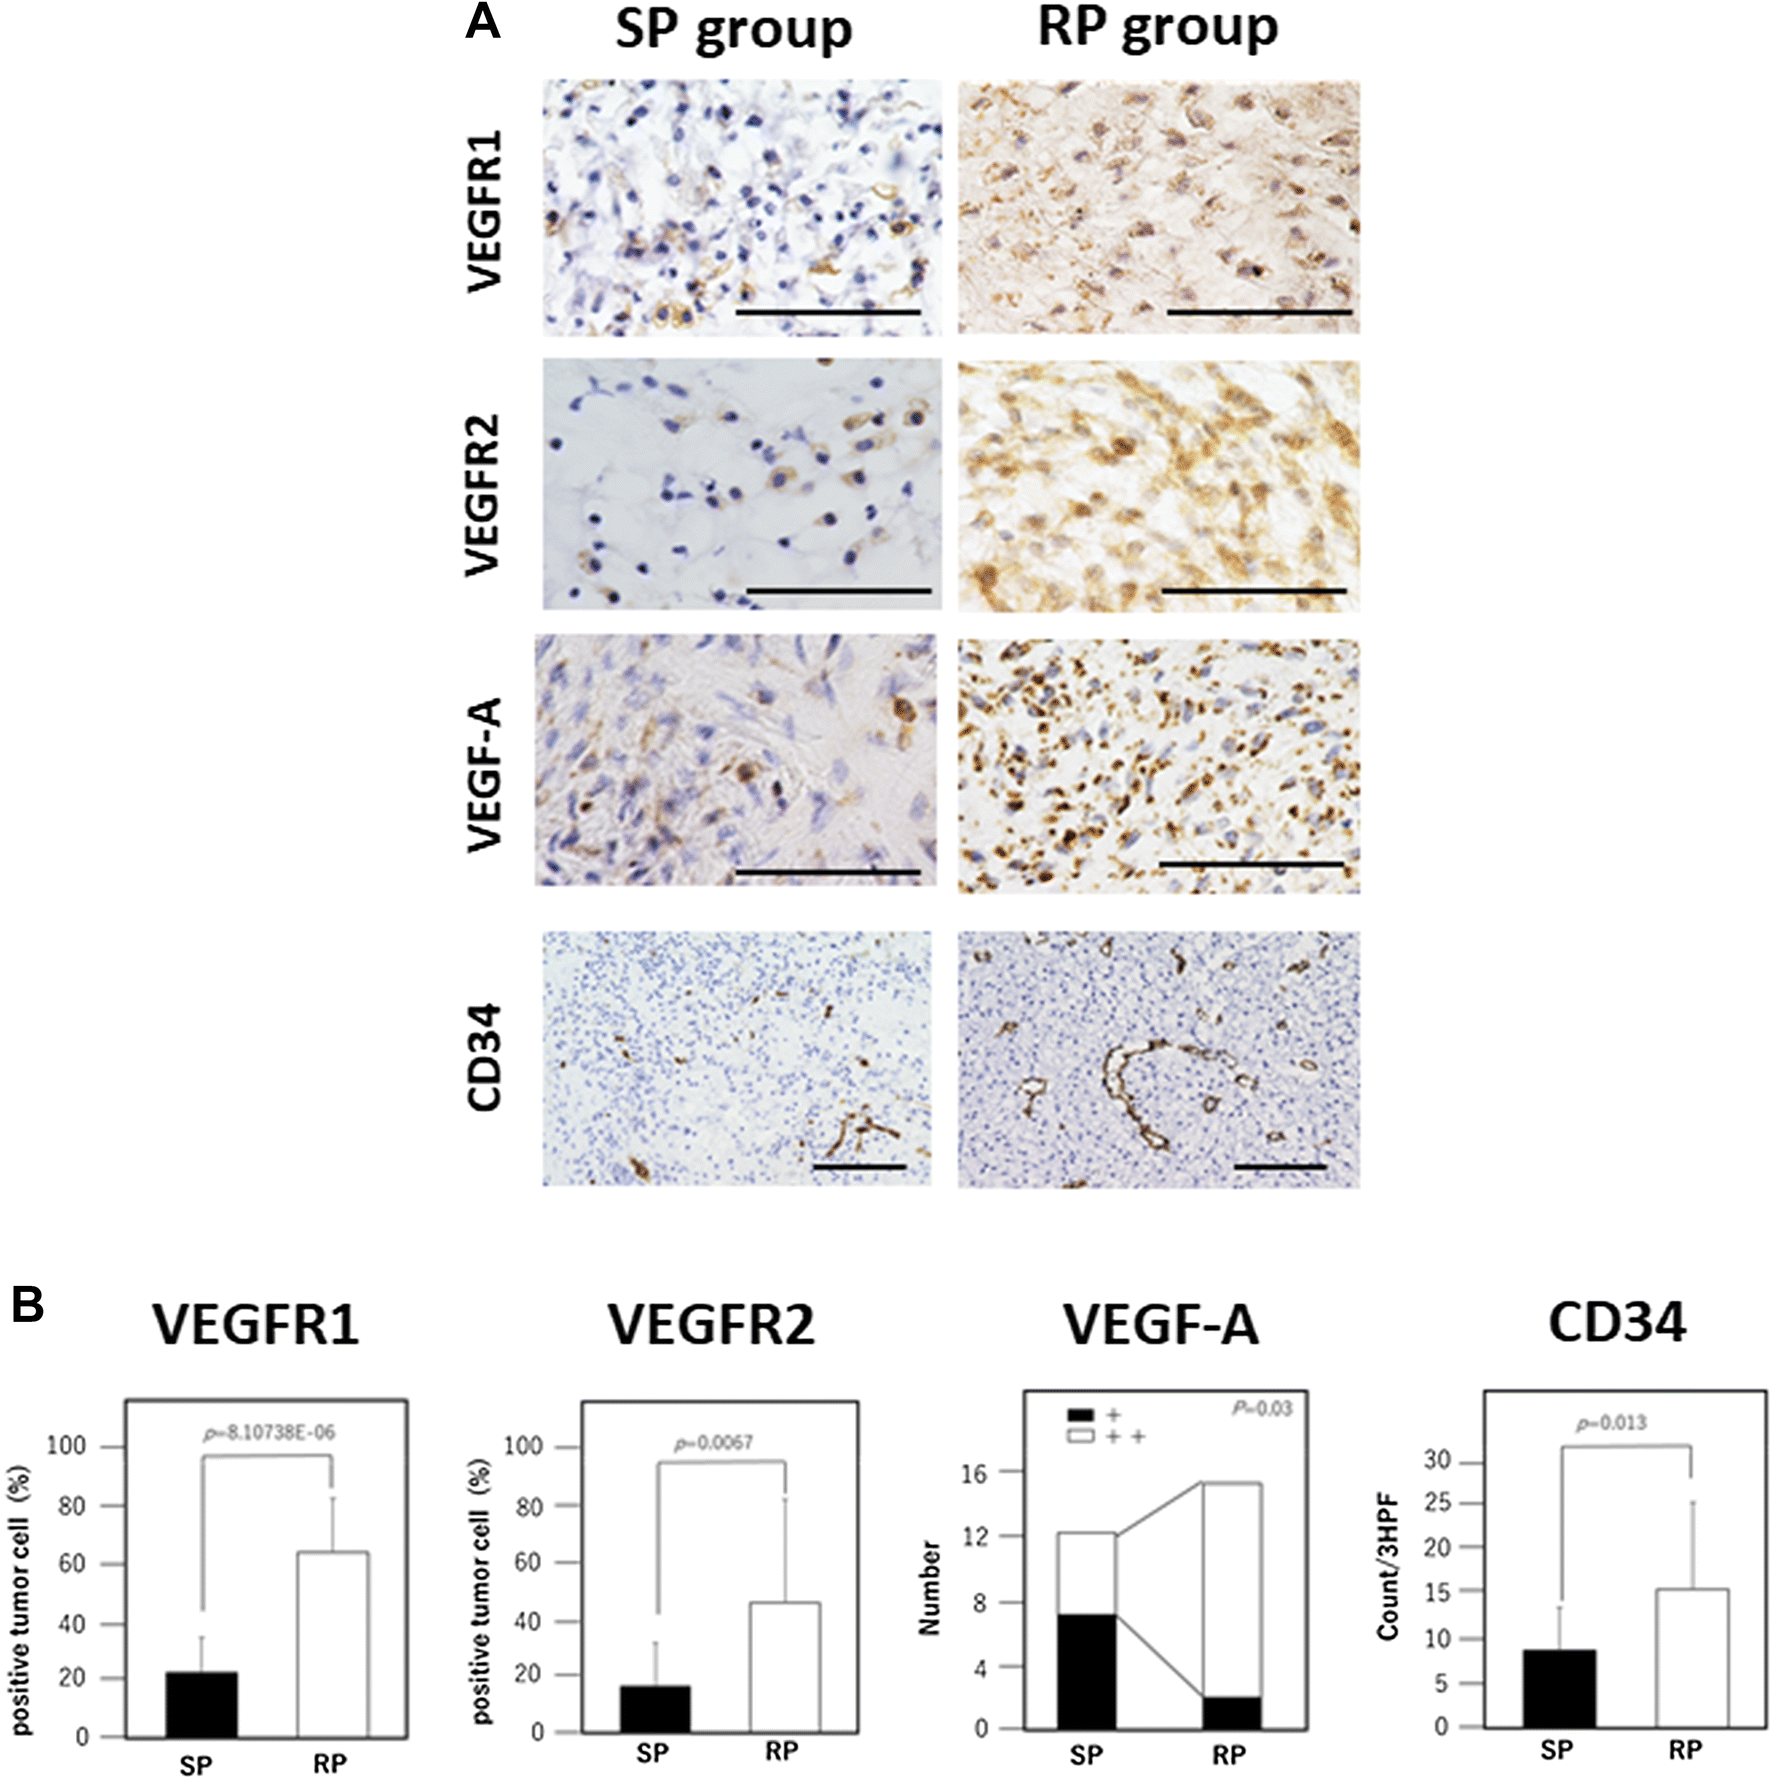 Prognostic significance of VEGF receptors expression on the